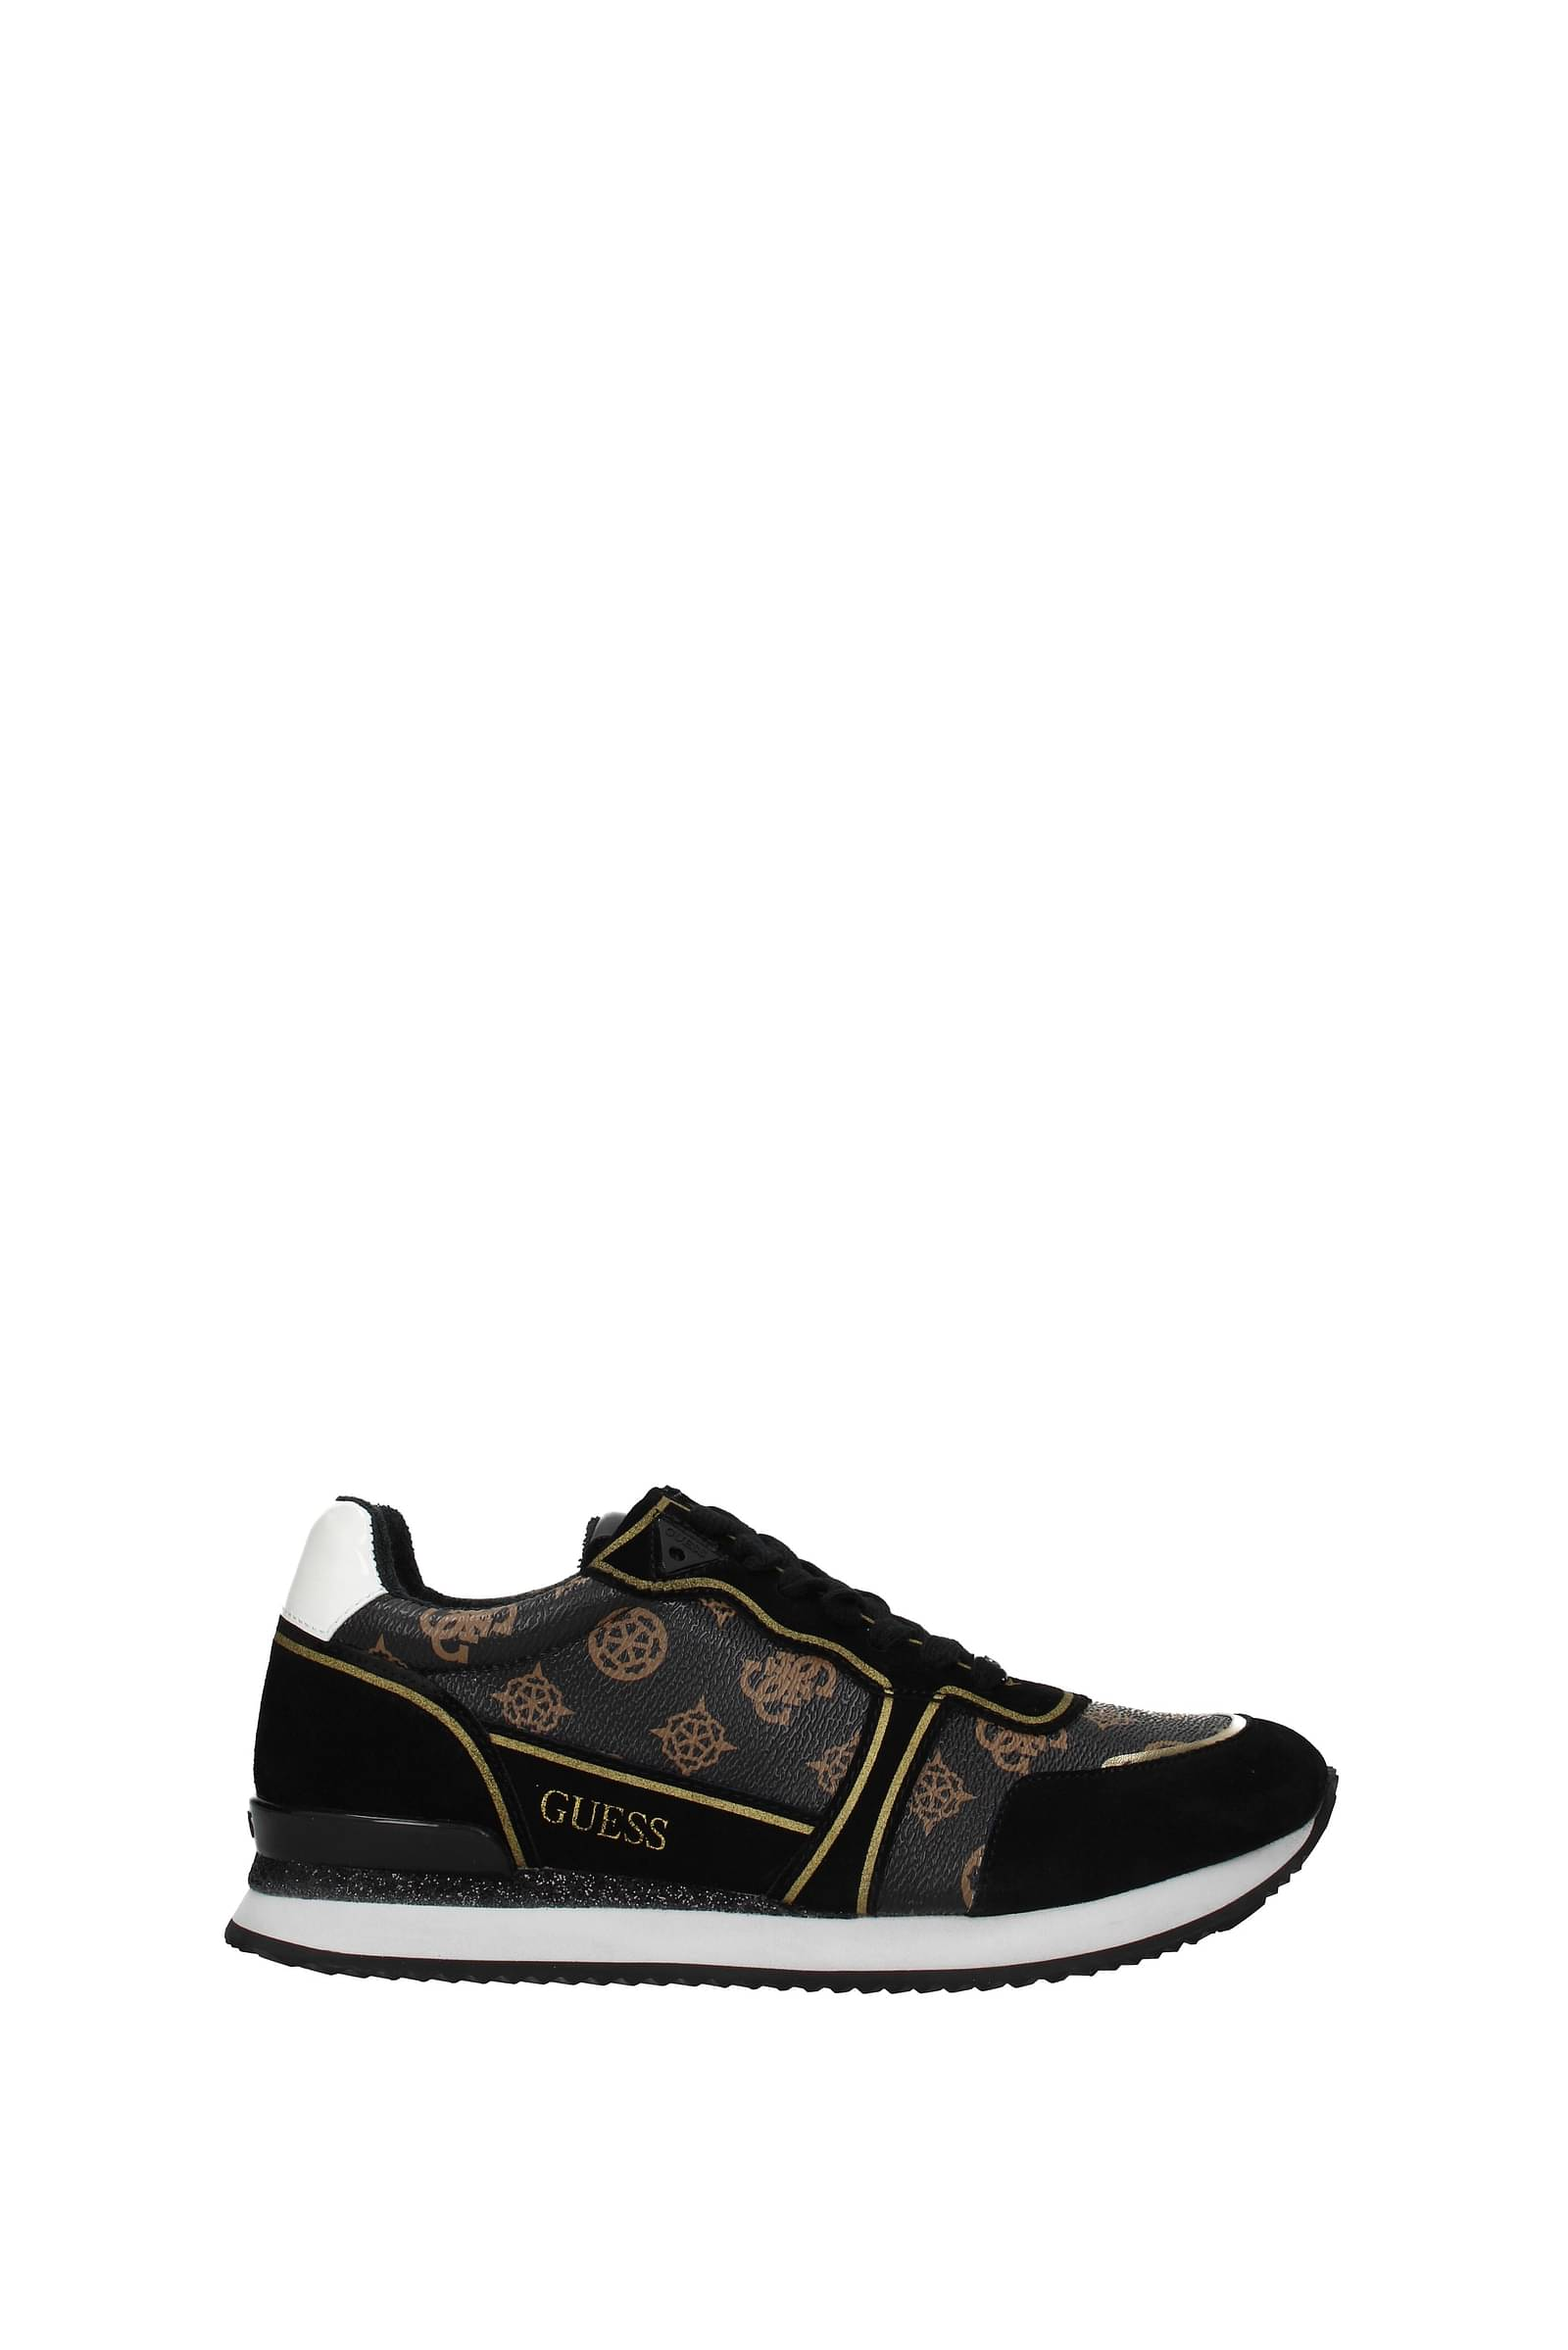 guess shoes outlet uk